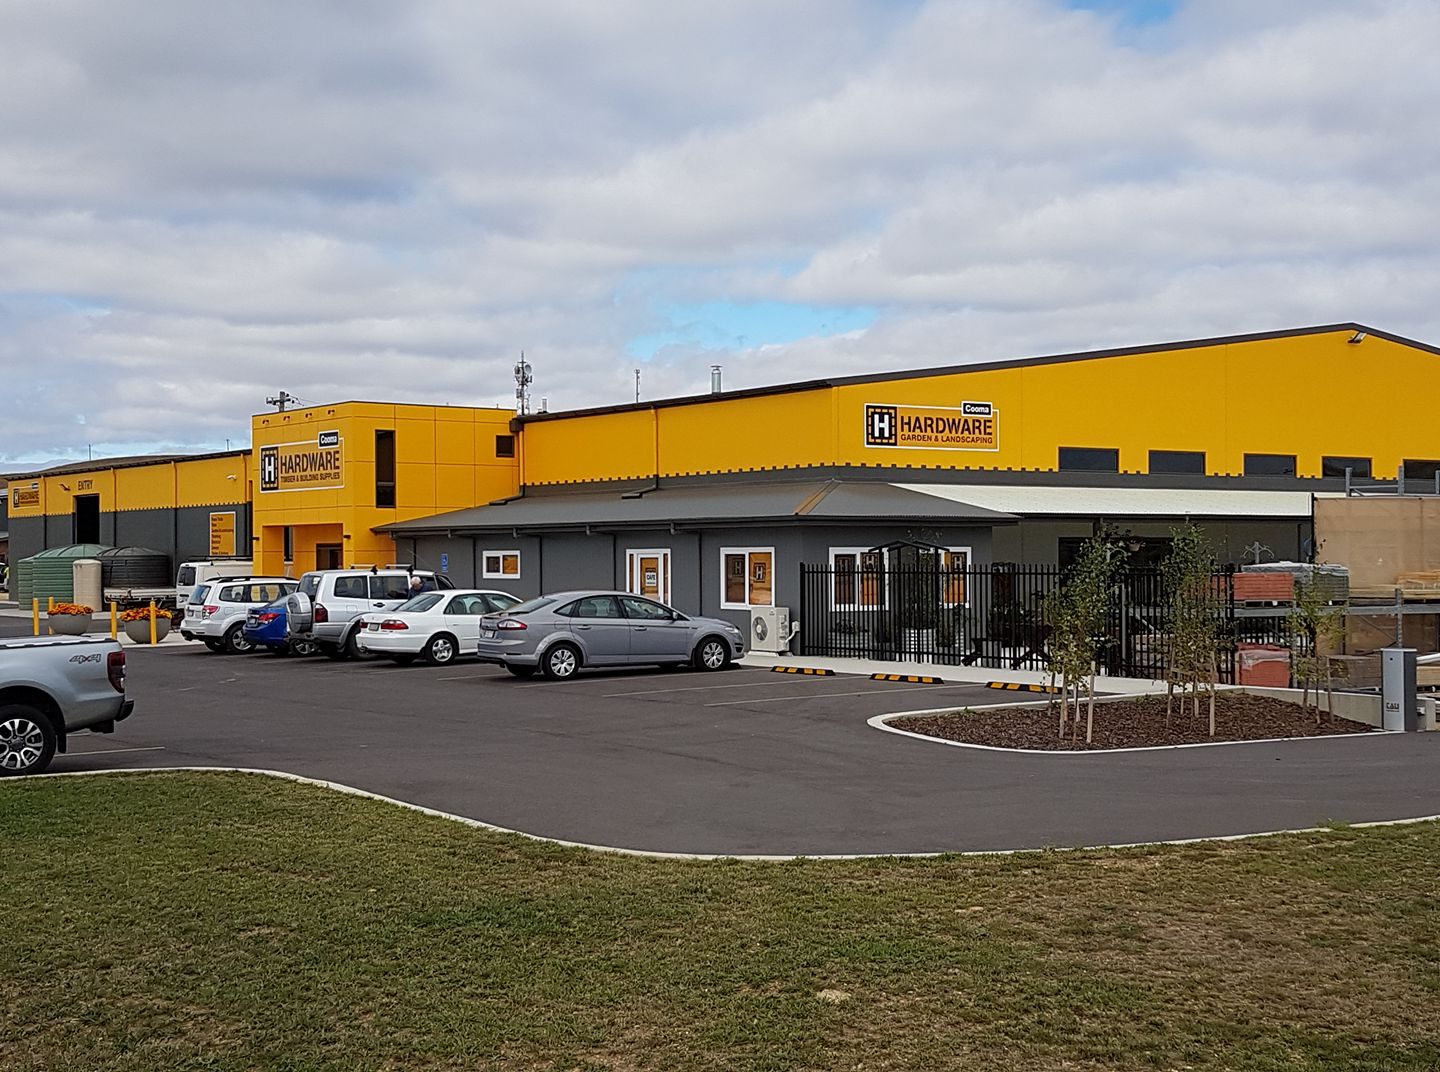 Cooma H Hardware